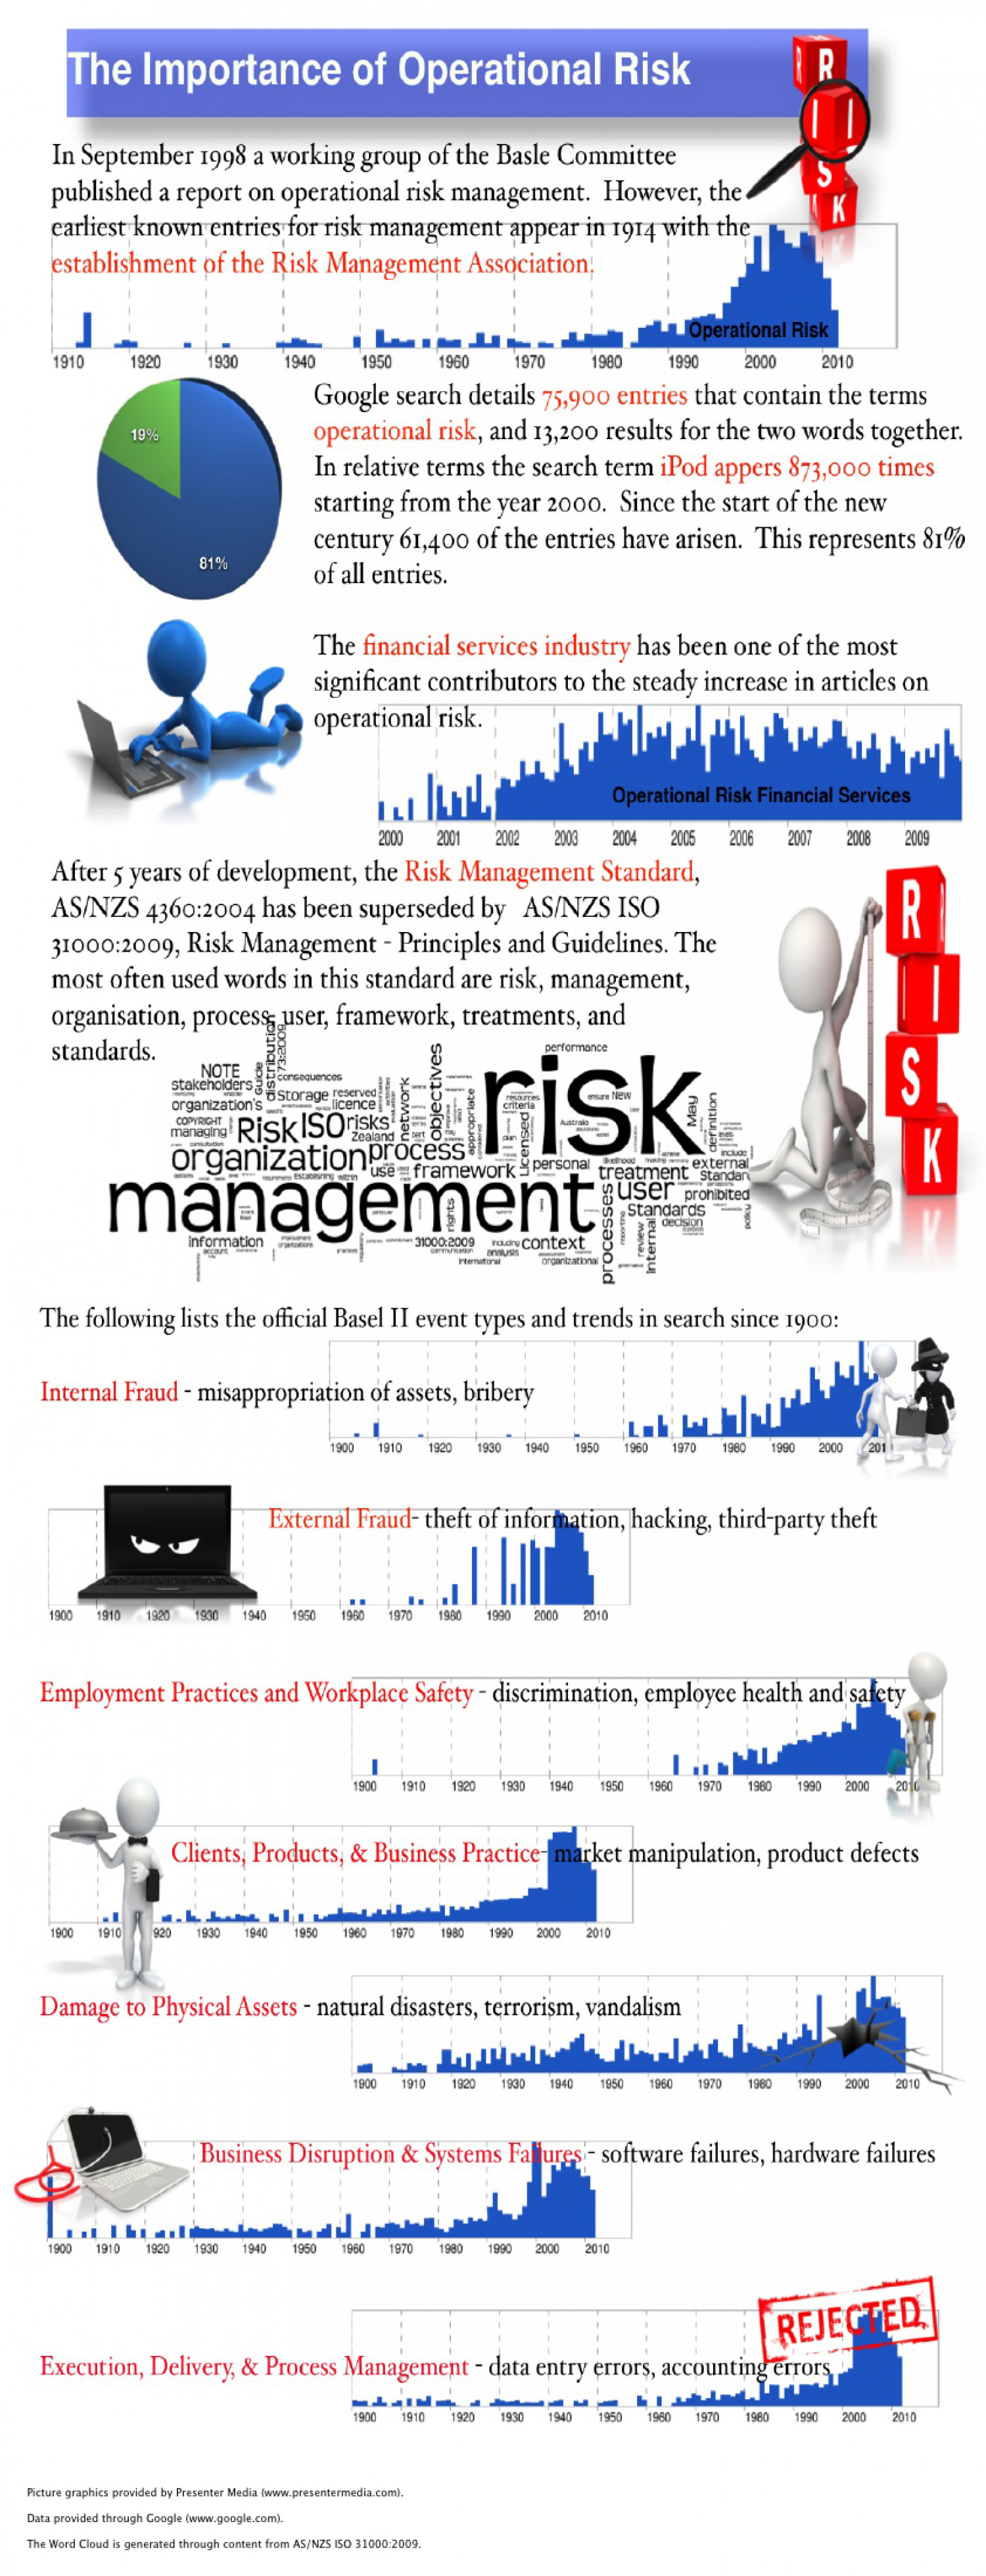 Operational Risk Infographic | The Innovation of Risk Infographic